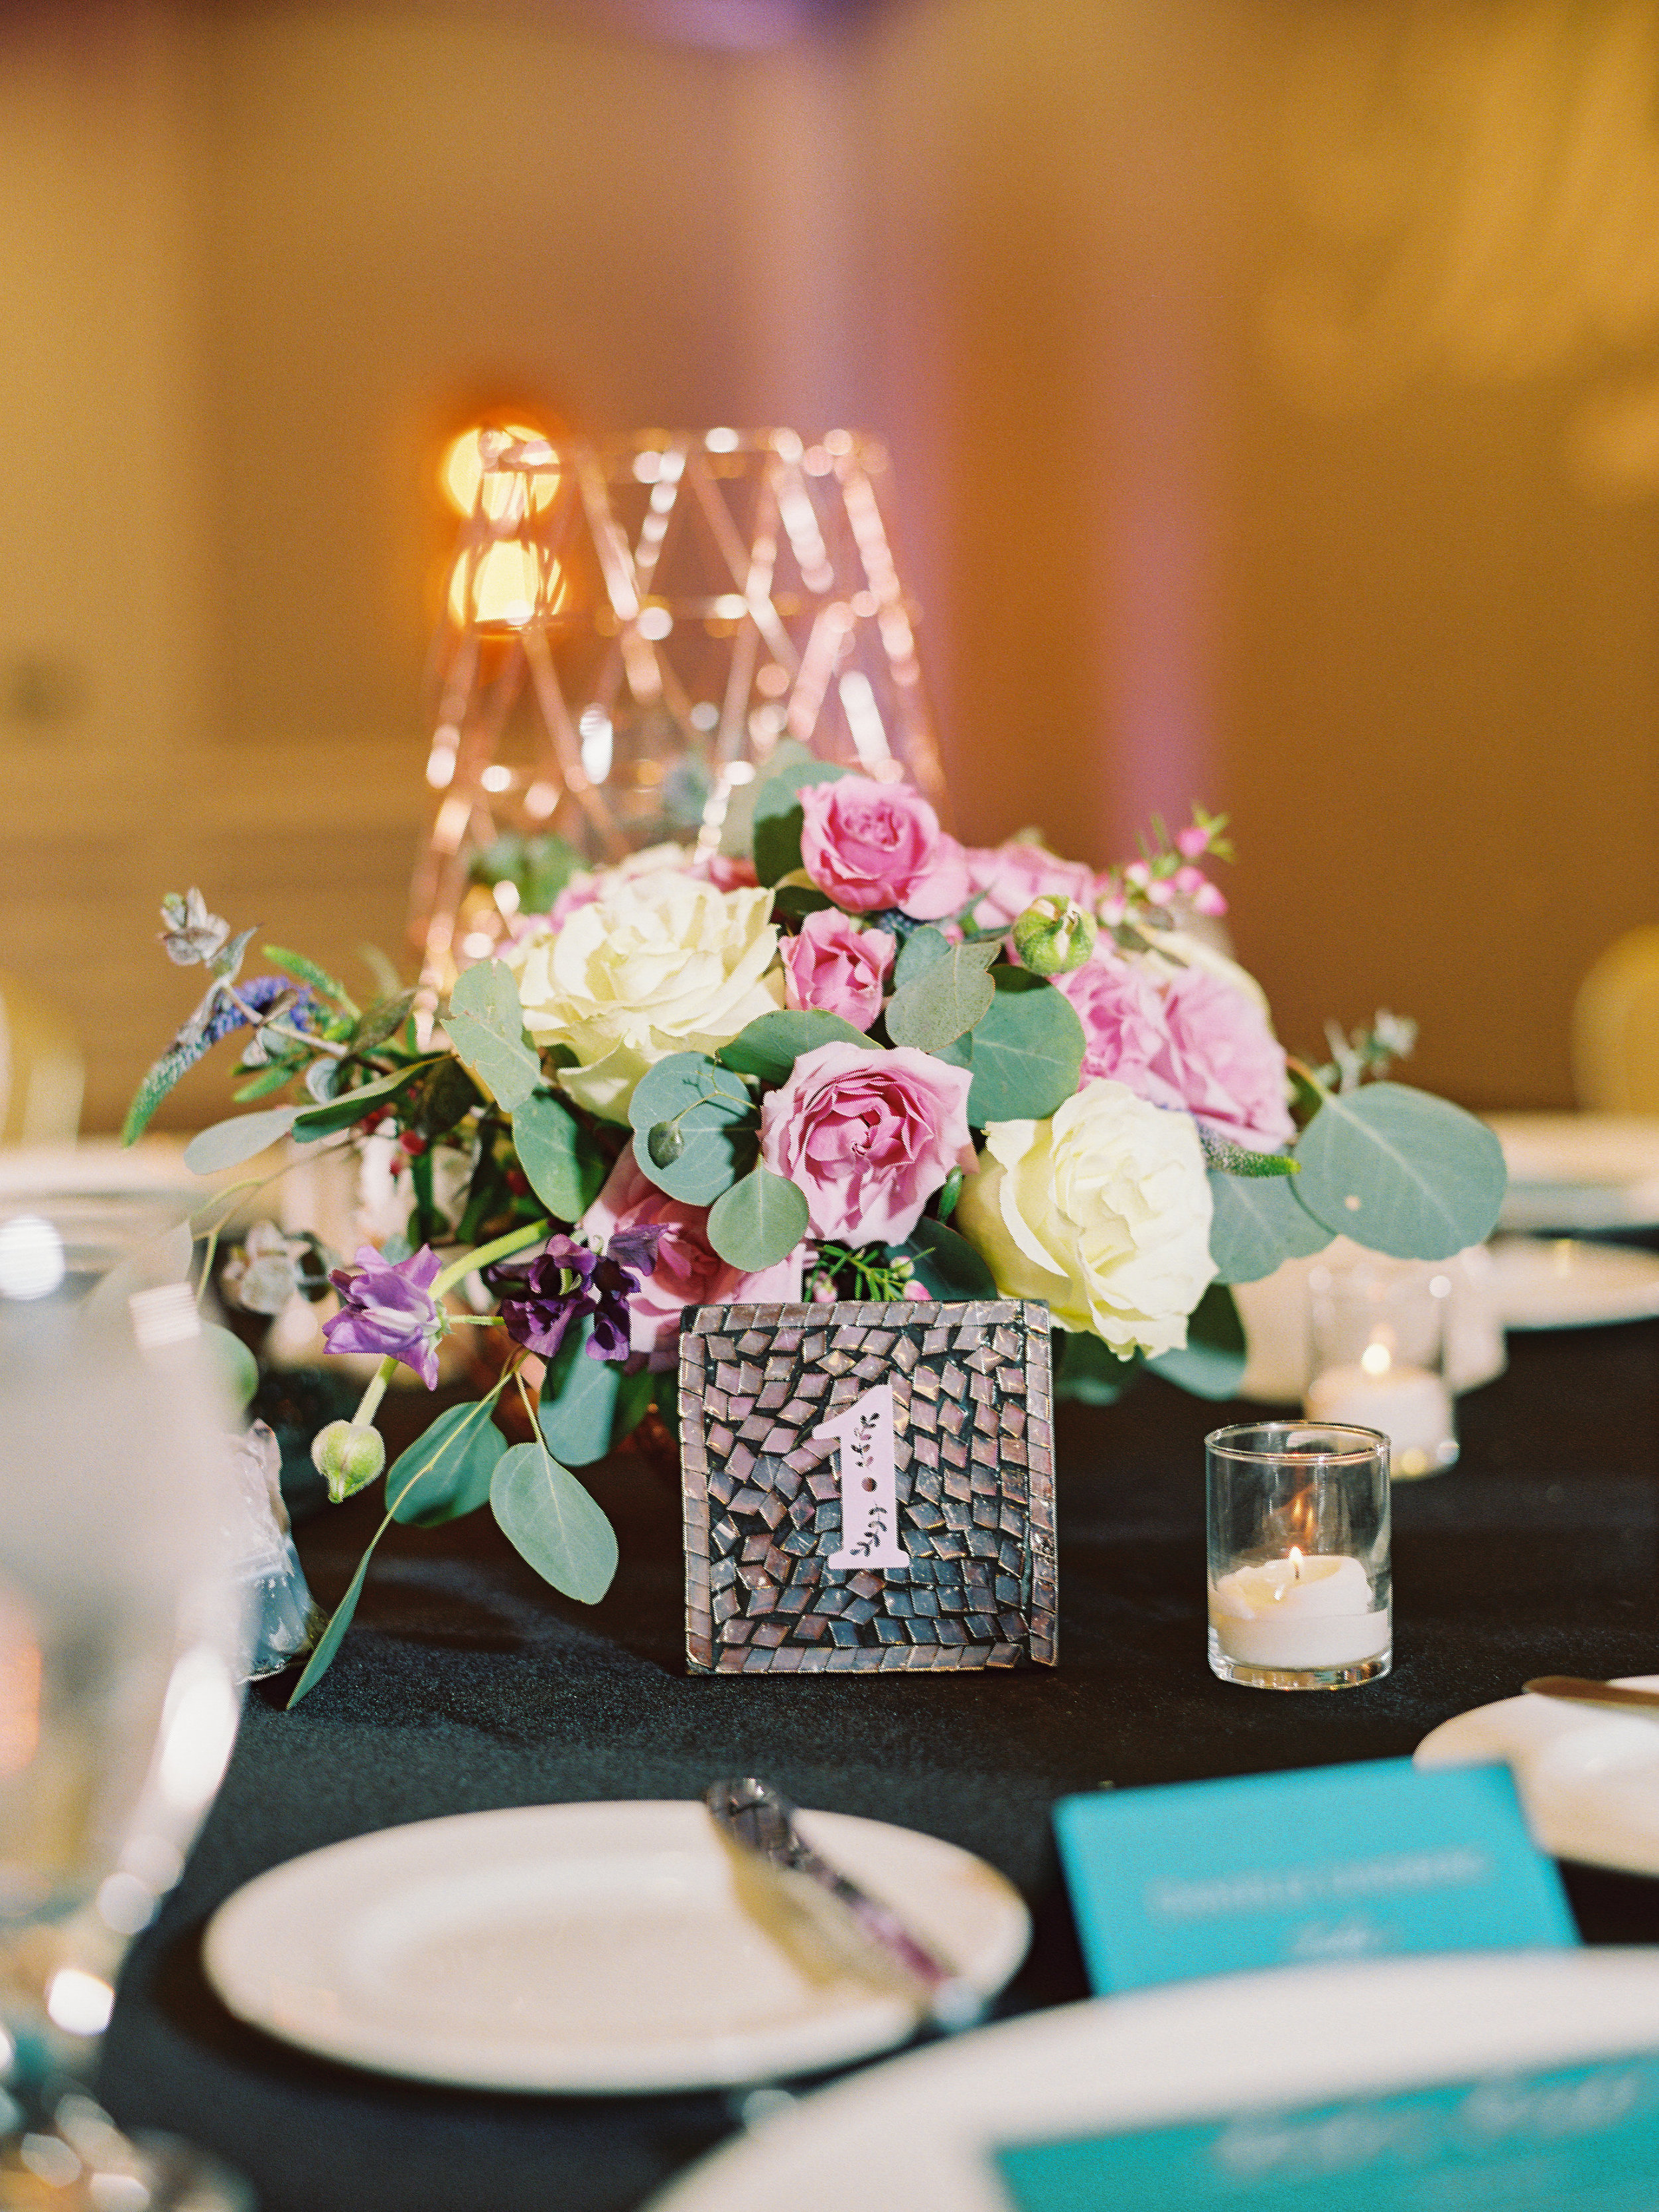 Noelle + Rich's Camby Vow Renewal - Centerpieces for teal and pink reception